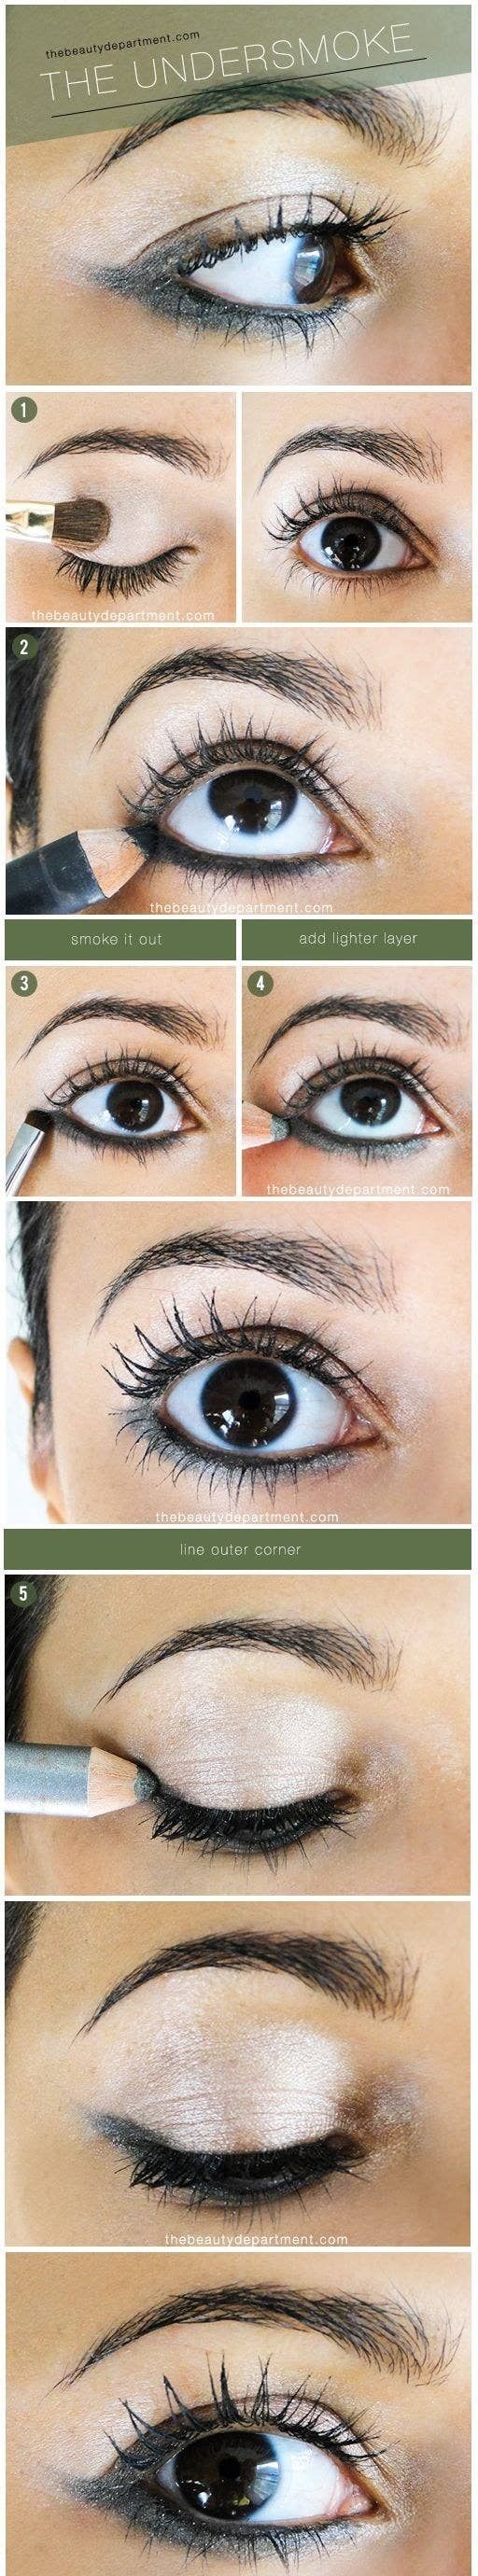 9157359f6ce Reverse your smokey cat eye by applying the winged tip from the bottom of  your eye with a Rimmel shadow stick, smudge brush, and white eyeshadow.